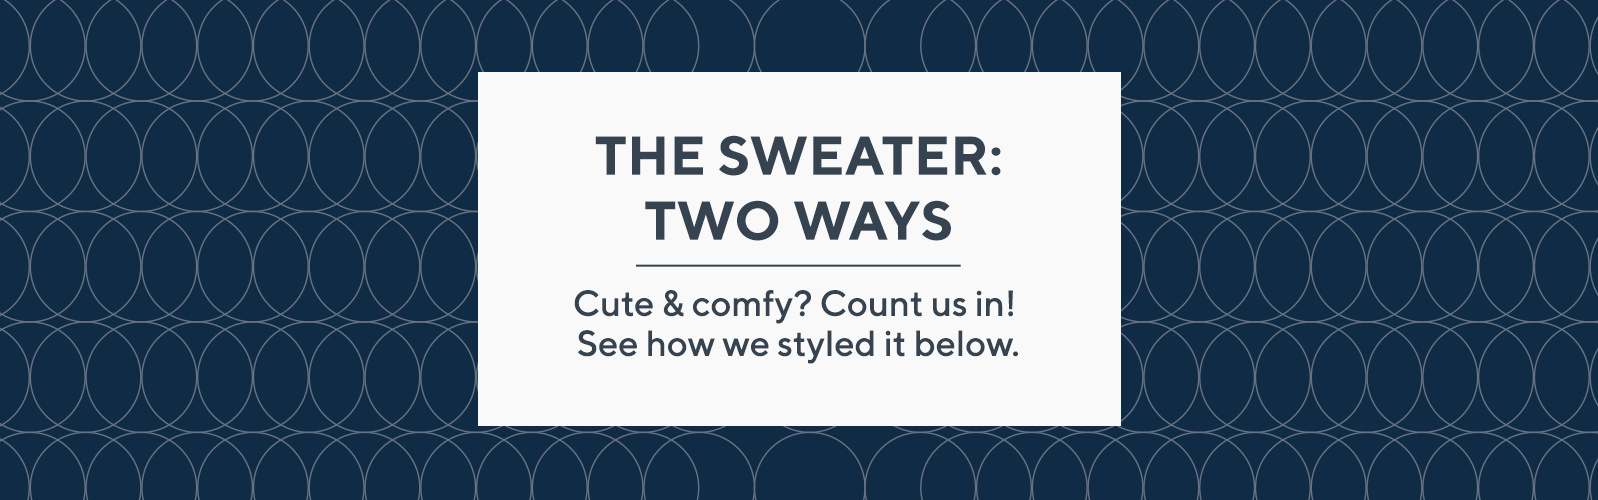 The Sweater: Two Ways  Cute & comfy? Count us in! See how we styled it below.